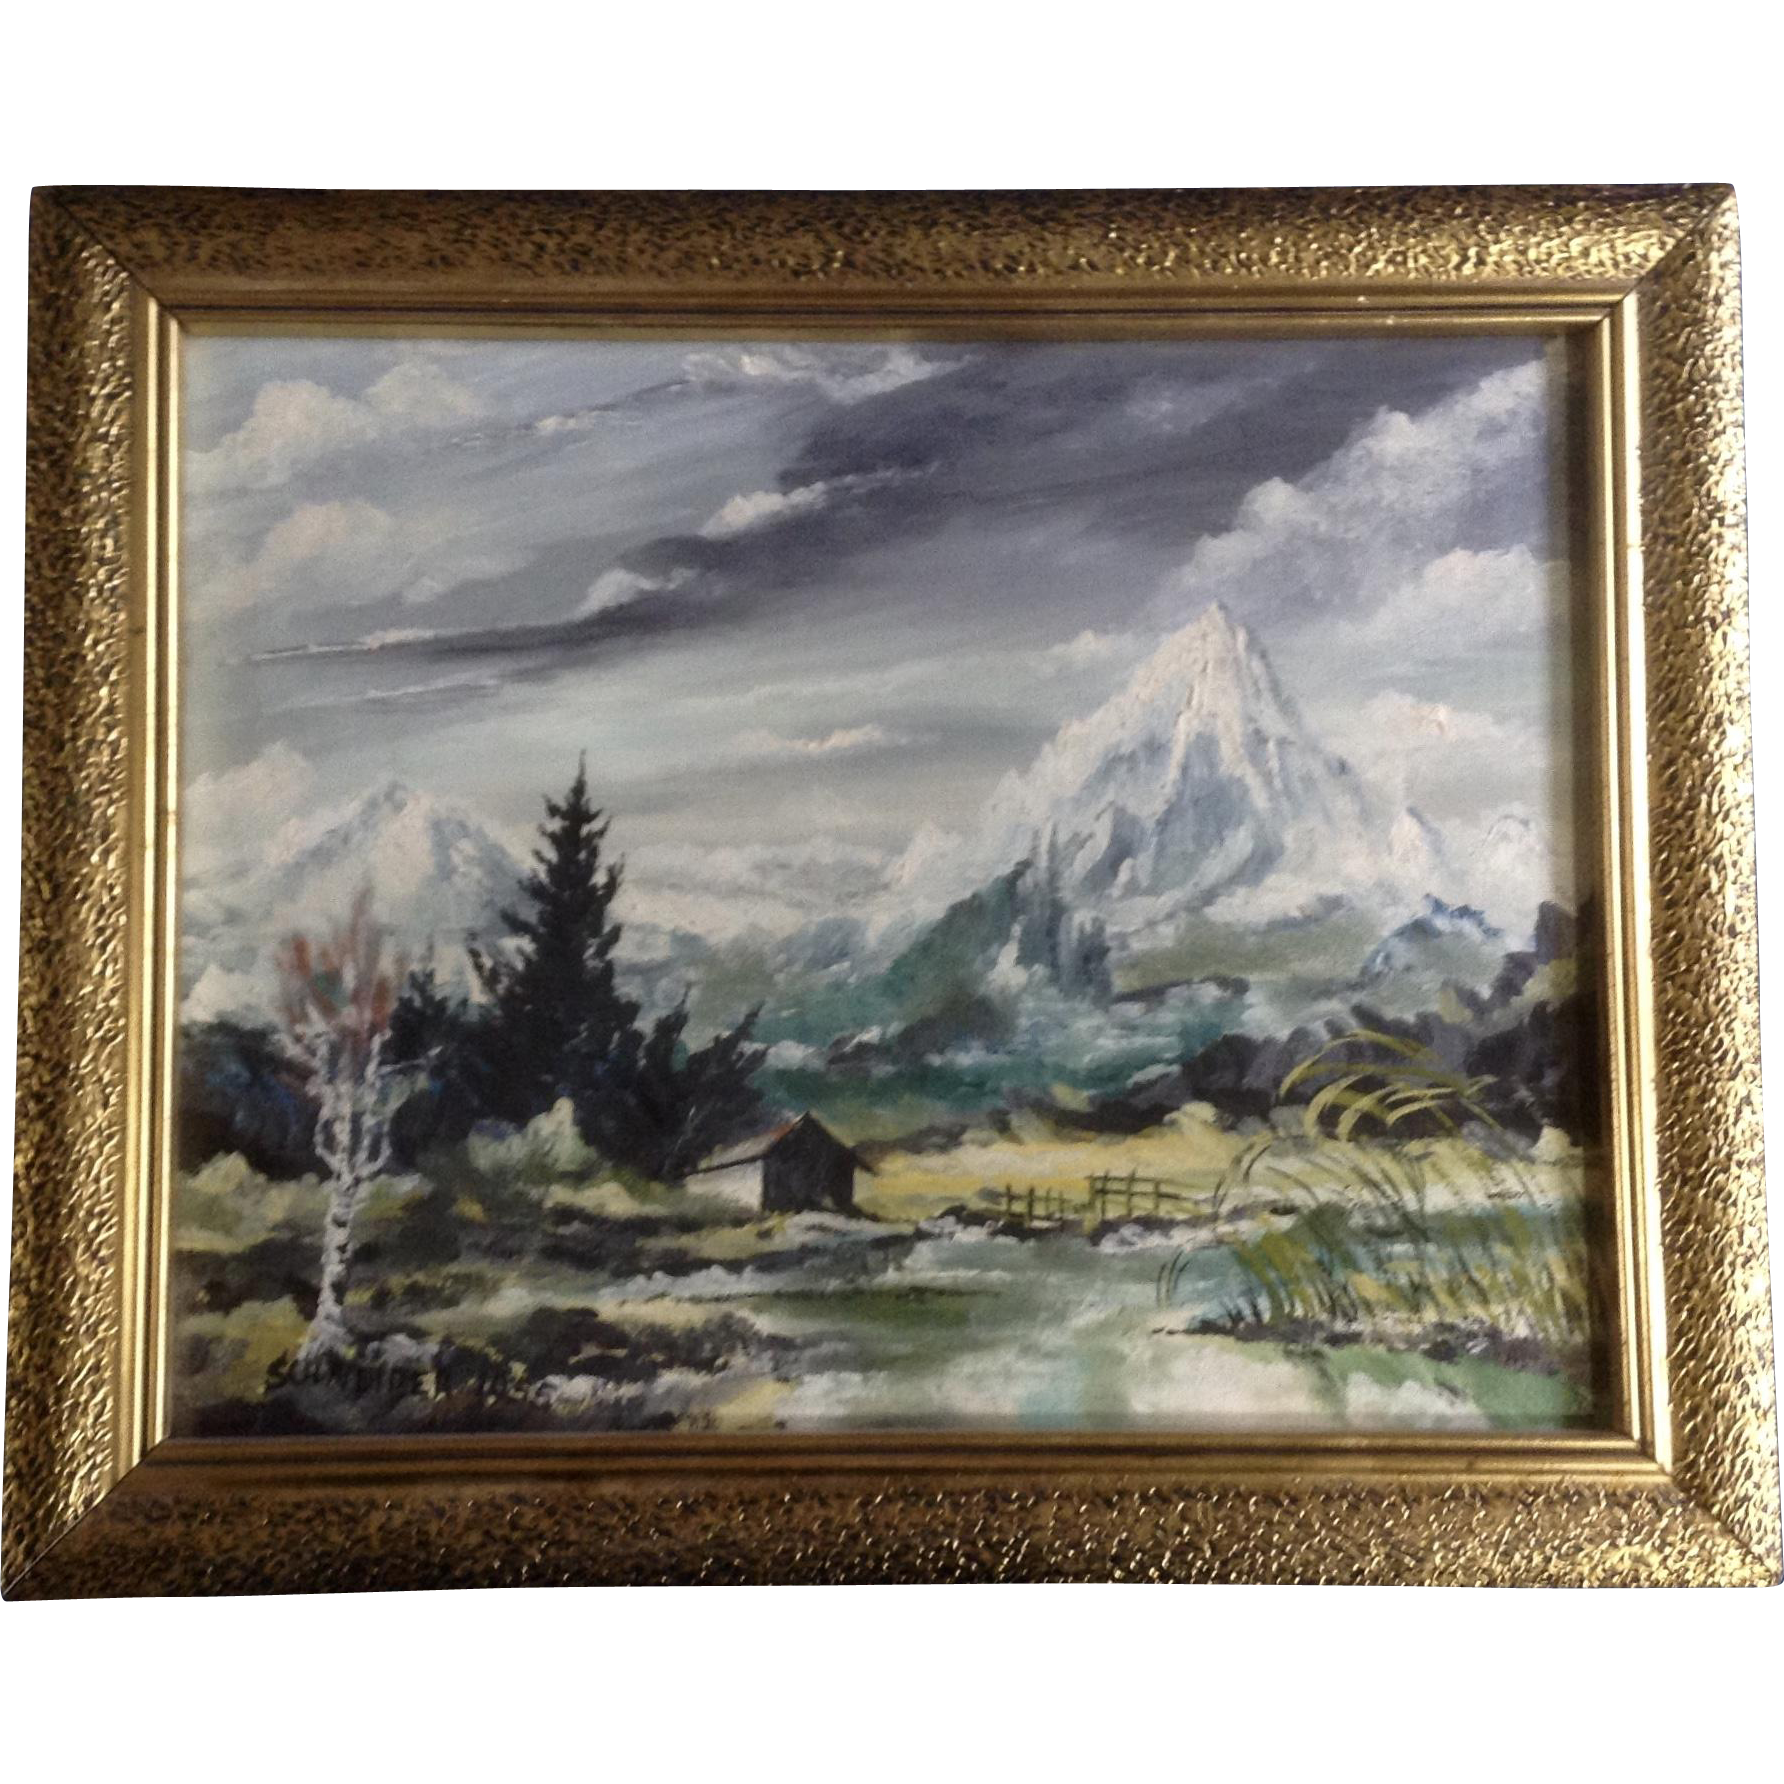 Landscaping drawing famous. Schneider die zugspitze mountain